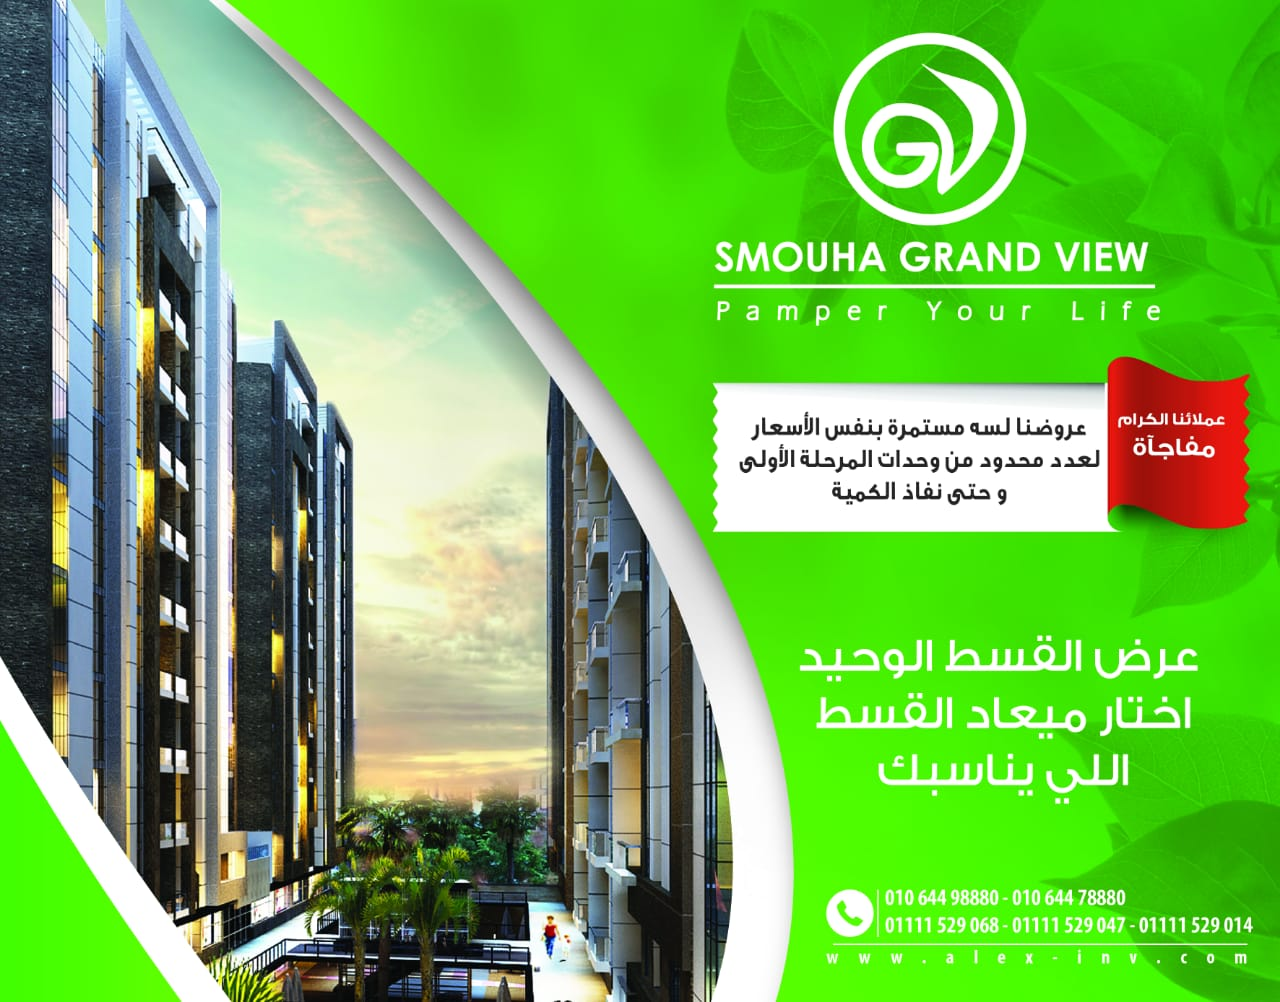 come and Ask for our single installment offer as you can choose the way of installment that suits you at smouha grand view  phase one hurry up before it ends